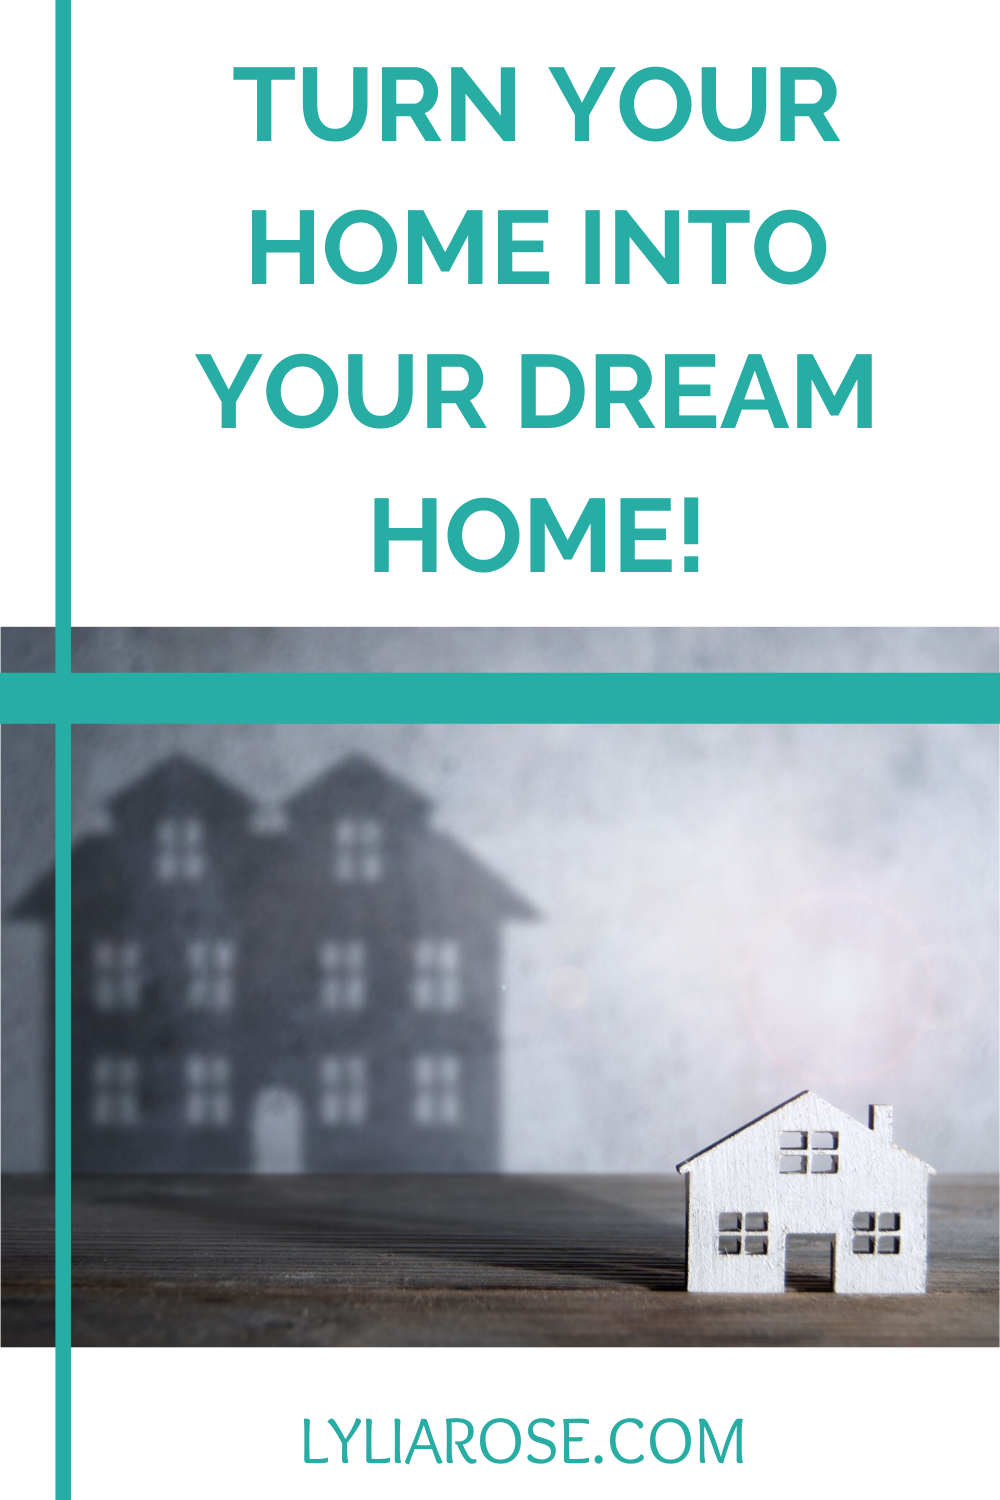 How to turn your home into your dream home